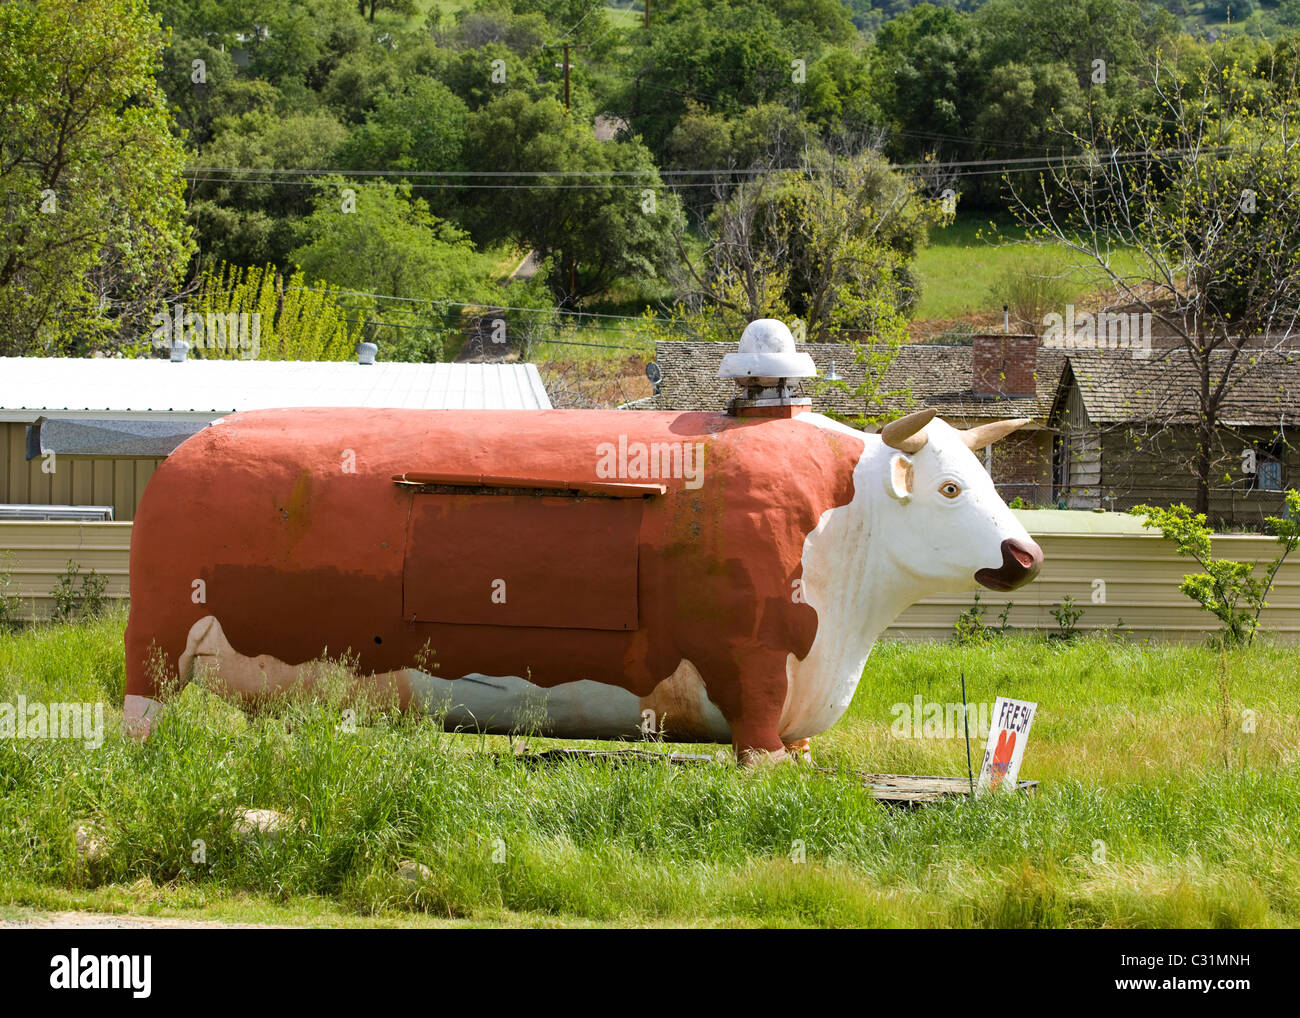 A large BBQ smoker in the shape of a cow sits in rural California - Stock Image